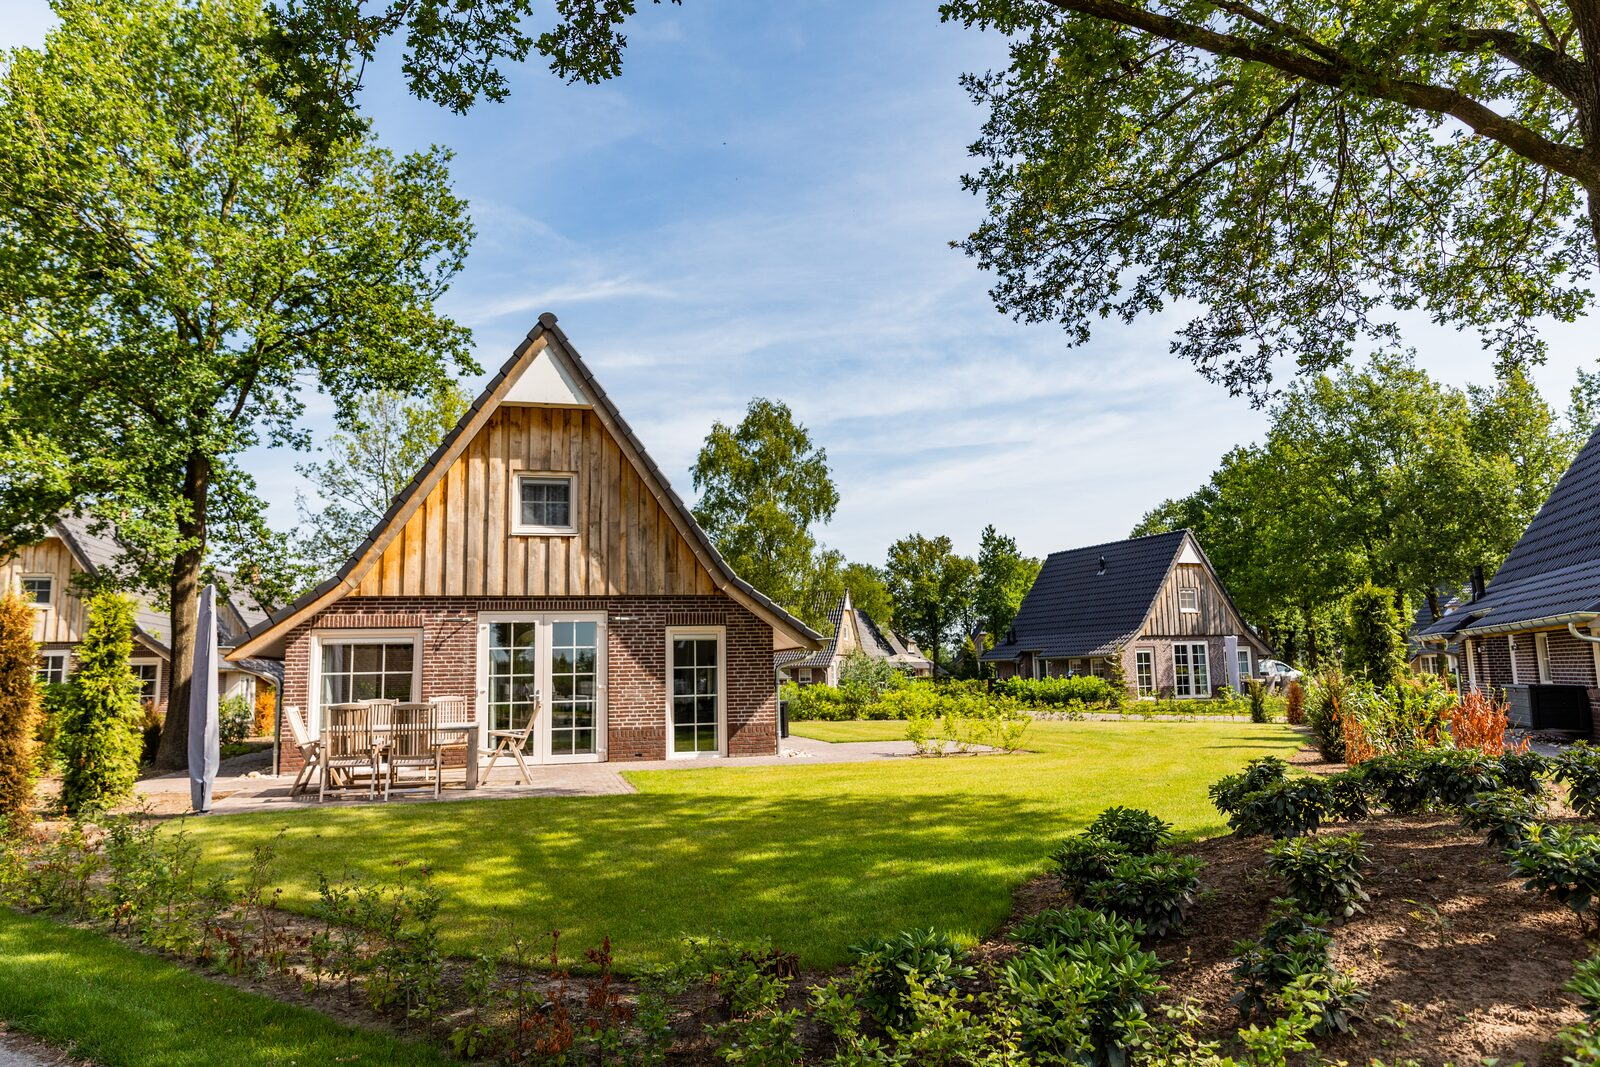 Luxus Ferienhaus in Holland